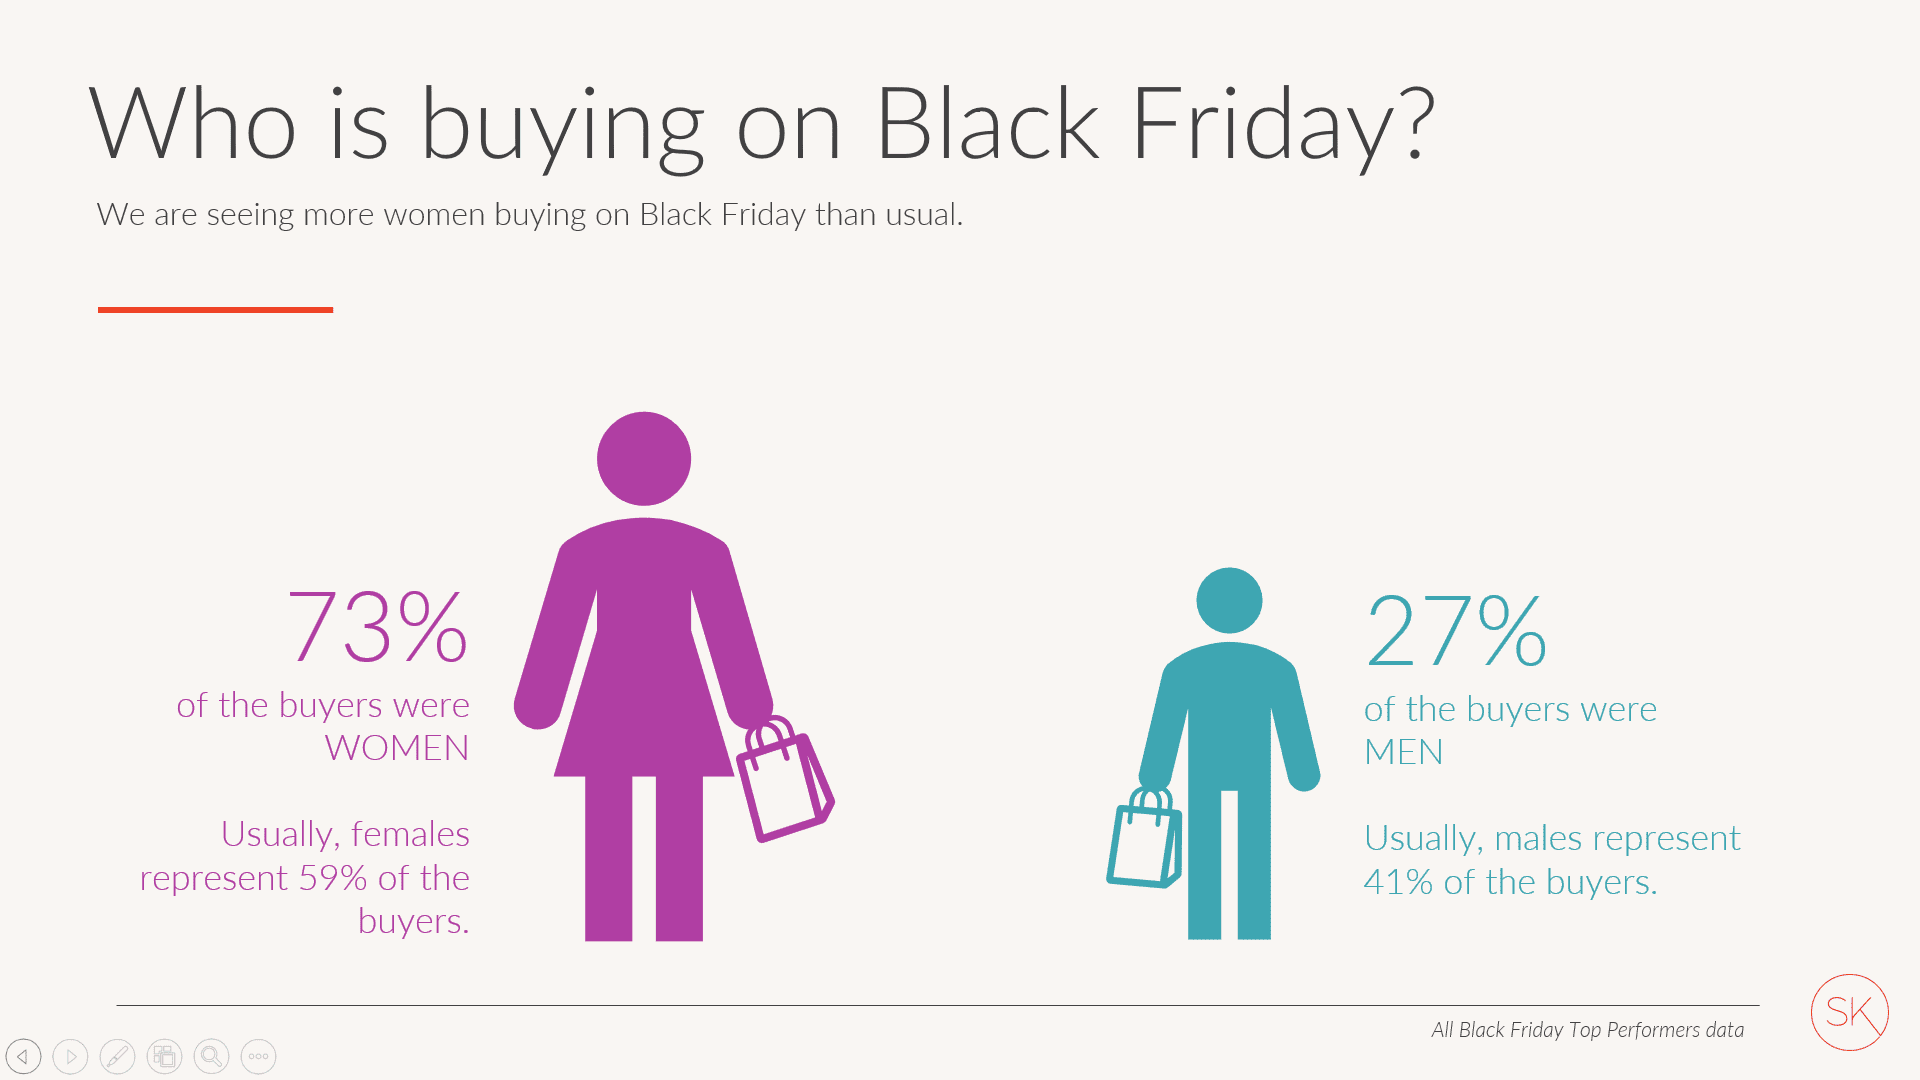 Who was buying on Black Friday